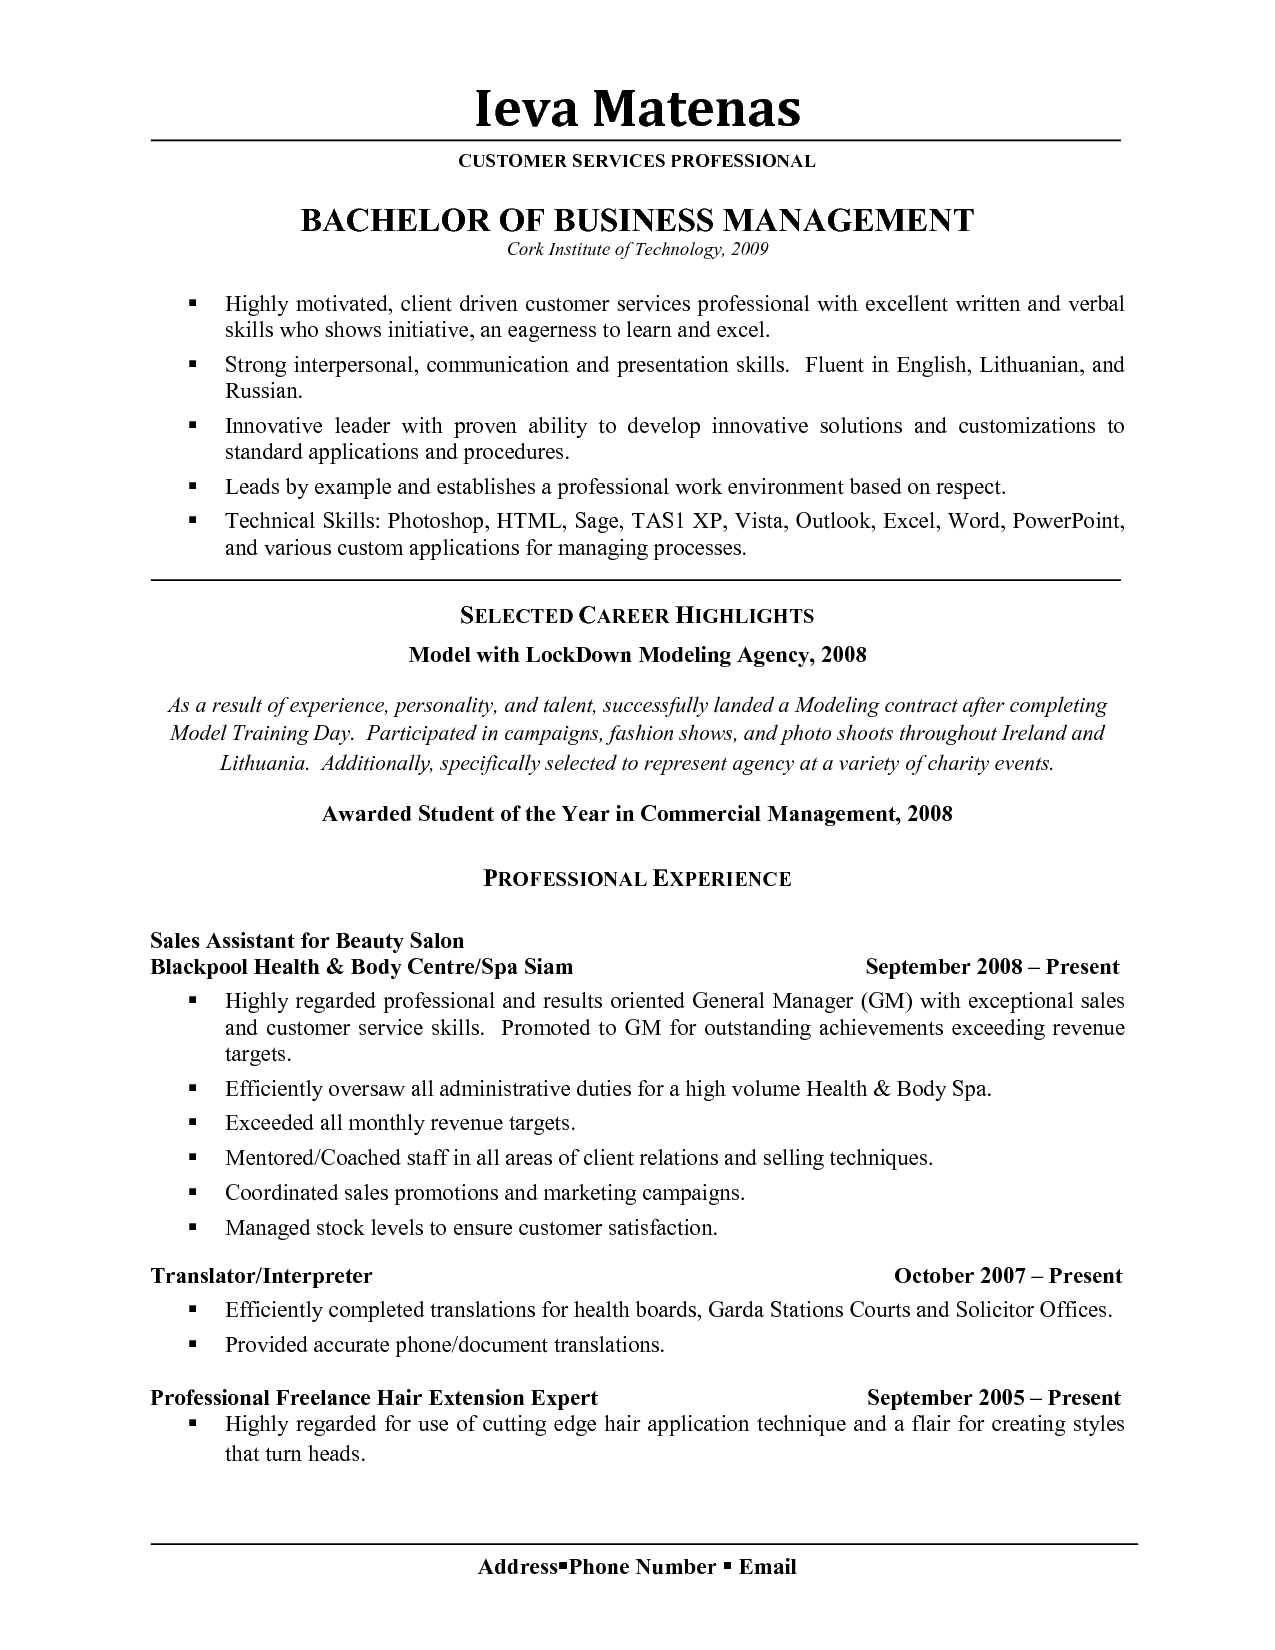 Resume Outline Examples Excellent Receptionist Resume  Document Sample  Resume Design